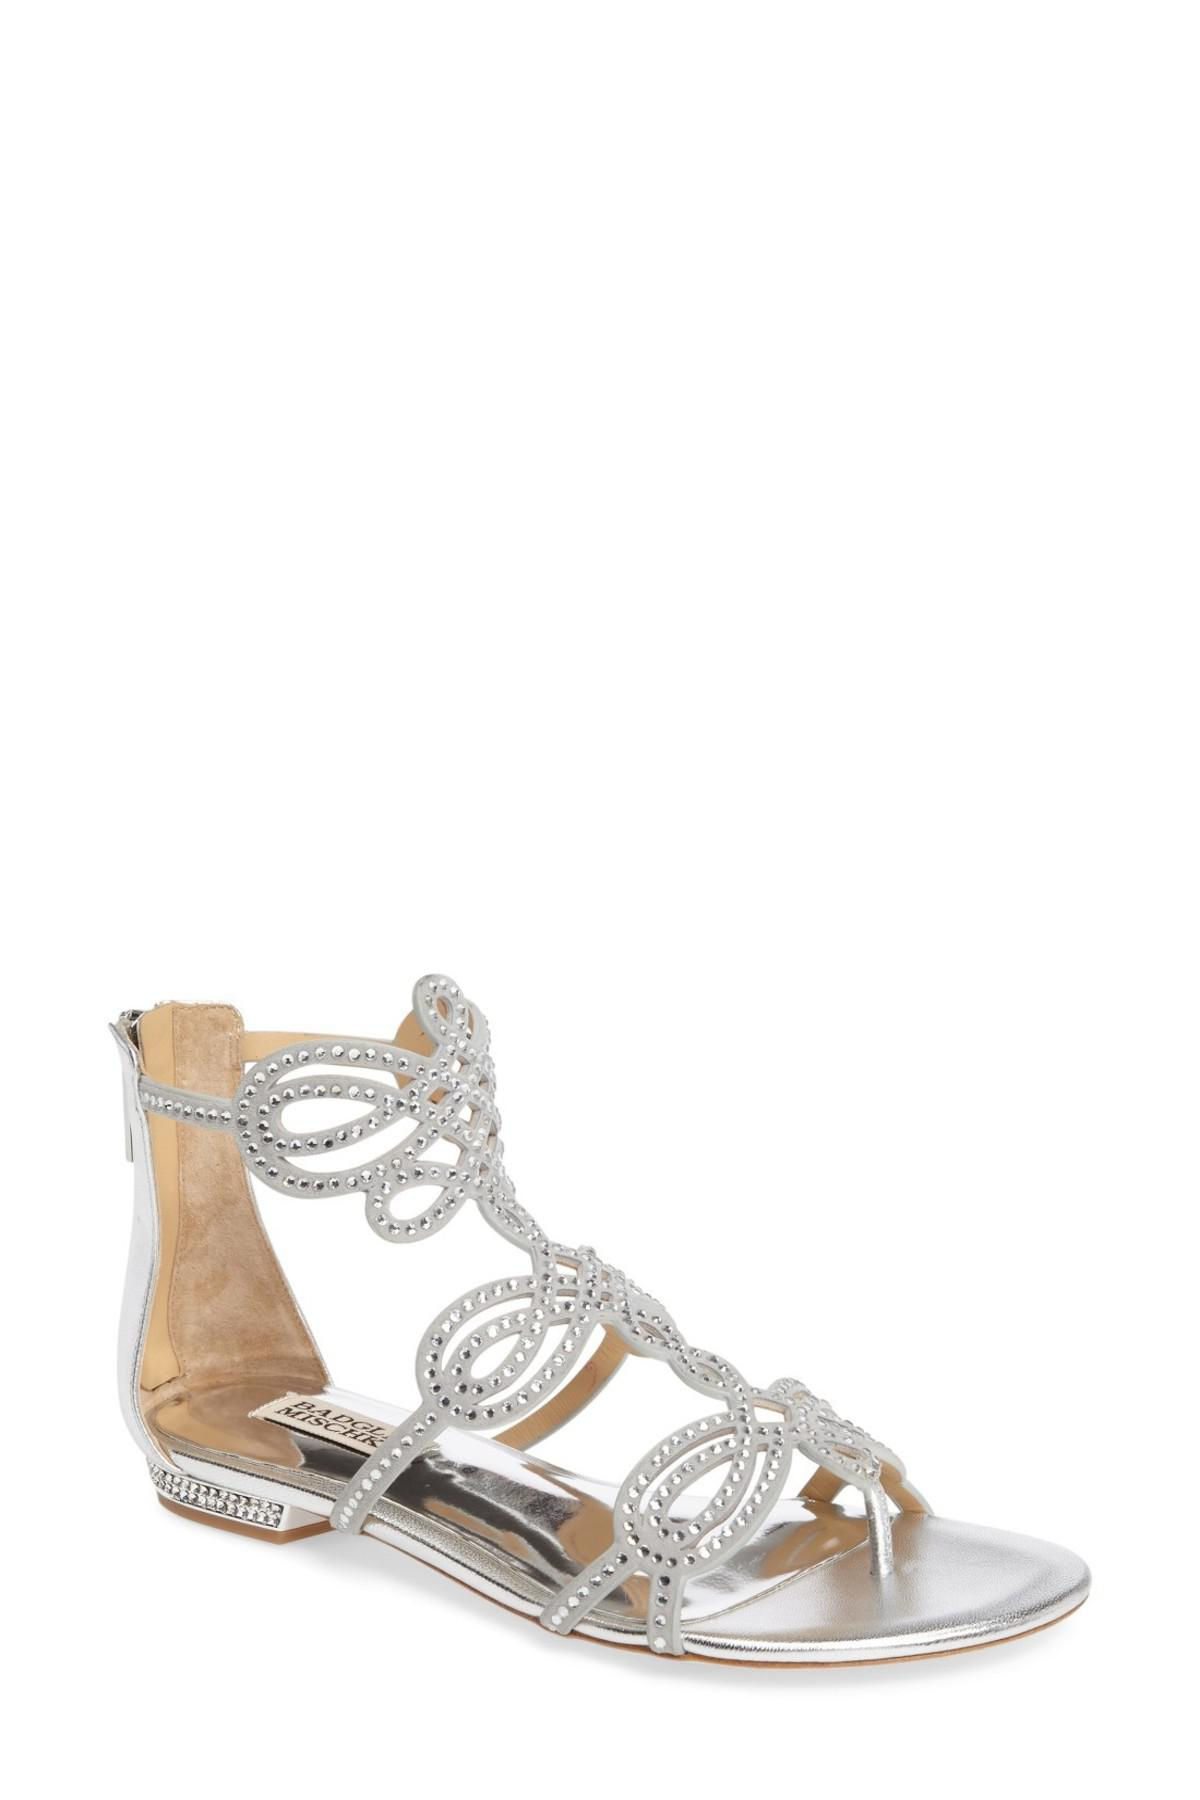 0fadf843c1d23e Lyst - Badgley Mischka Tempe Embellished Suede Sandal in Metallic